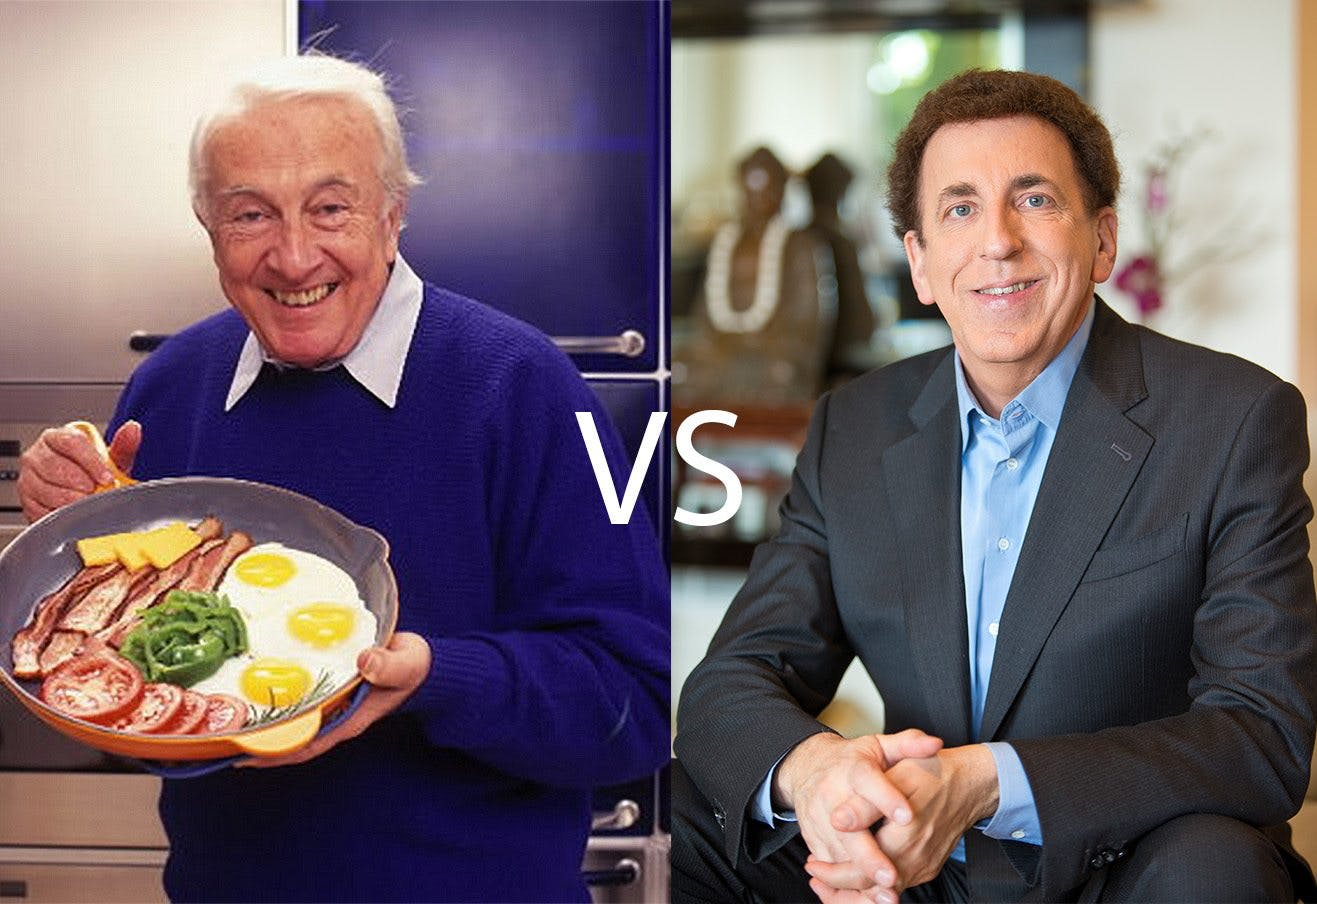 The Rivalry Between Atkins and Ornish: LowCarb Vs. HighCarb